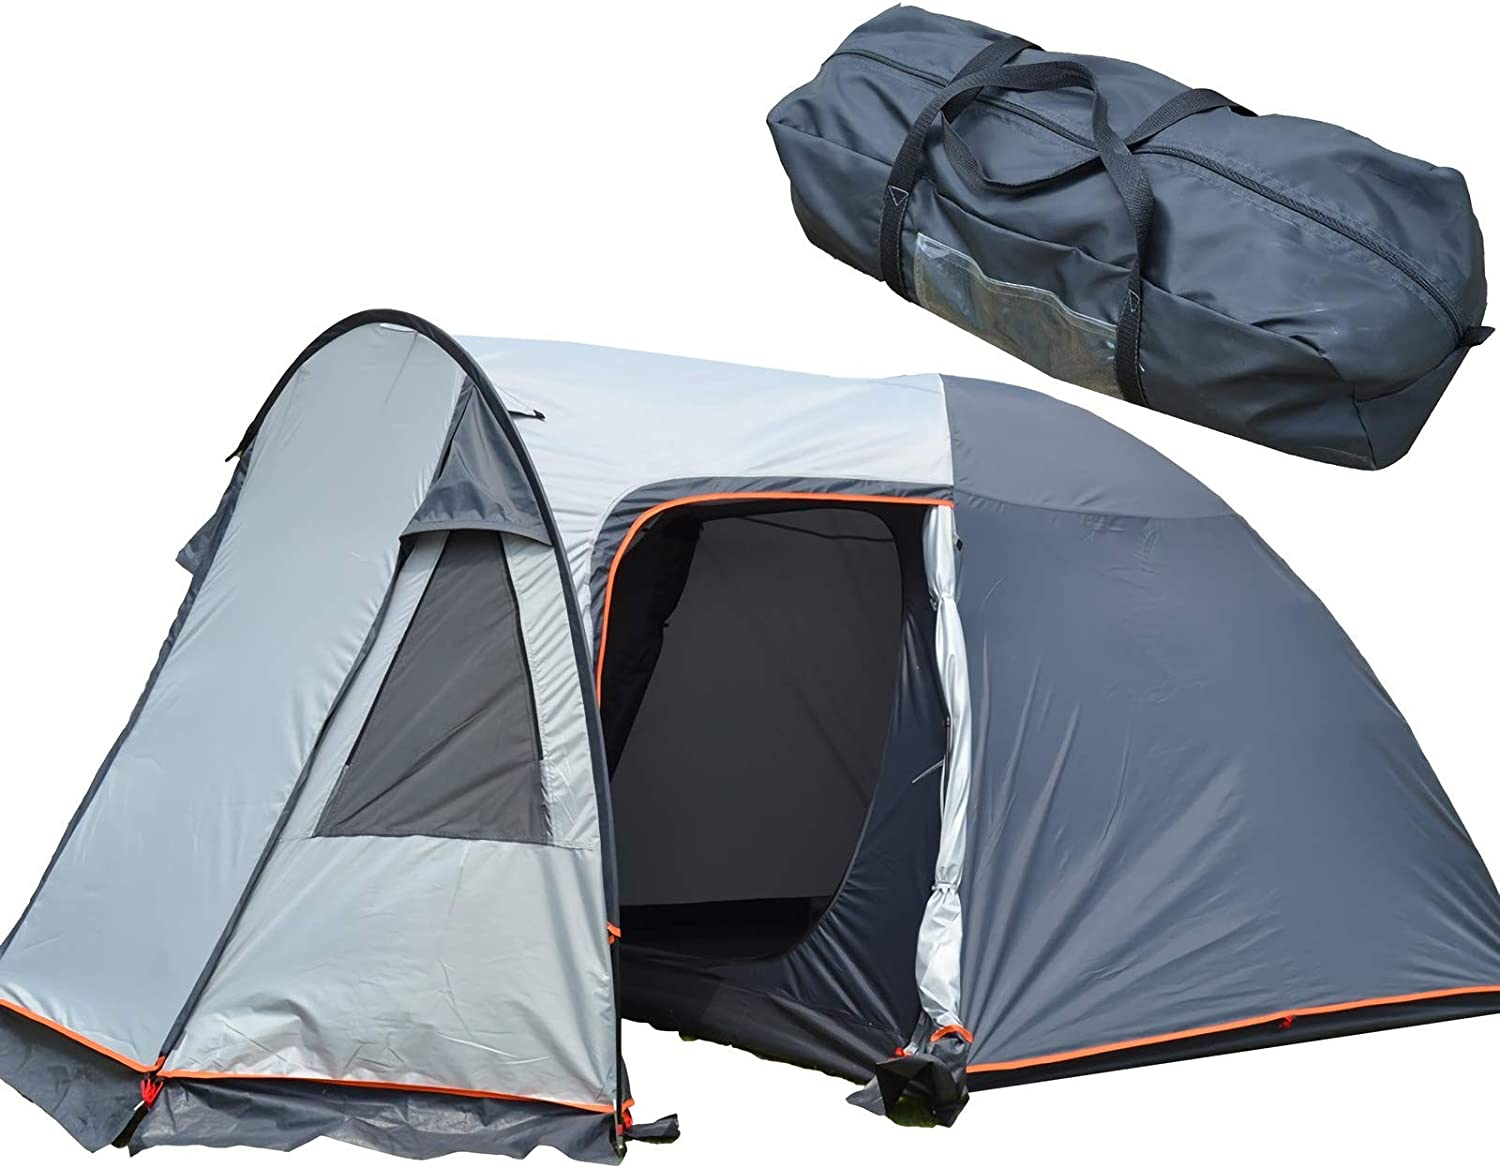 Touring tent inner tent water pressure 3000mm with a storage bag [four to five people for] [parallel import goods]